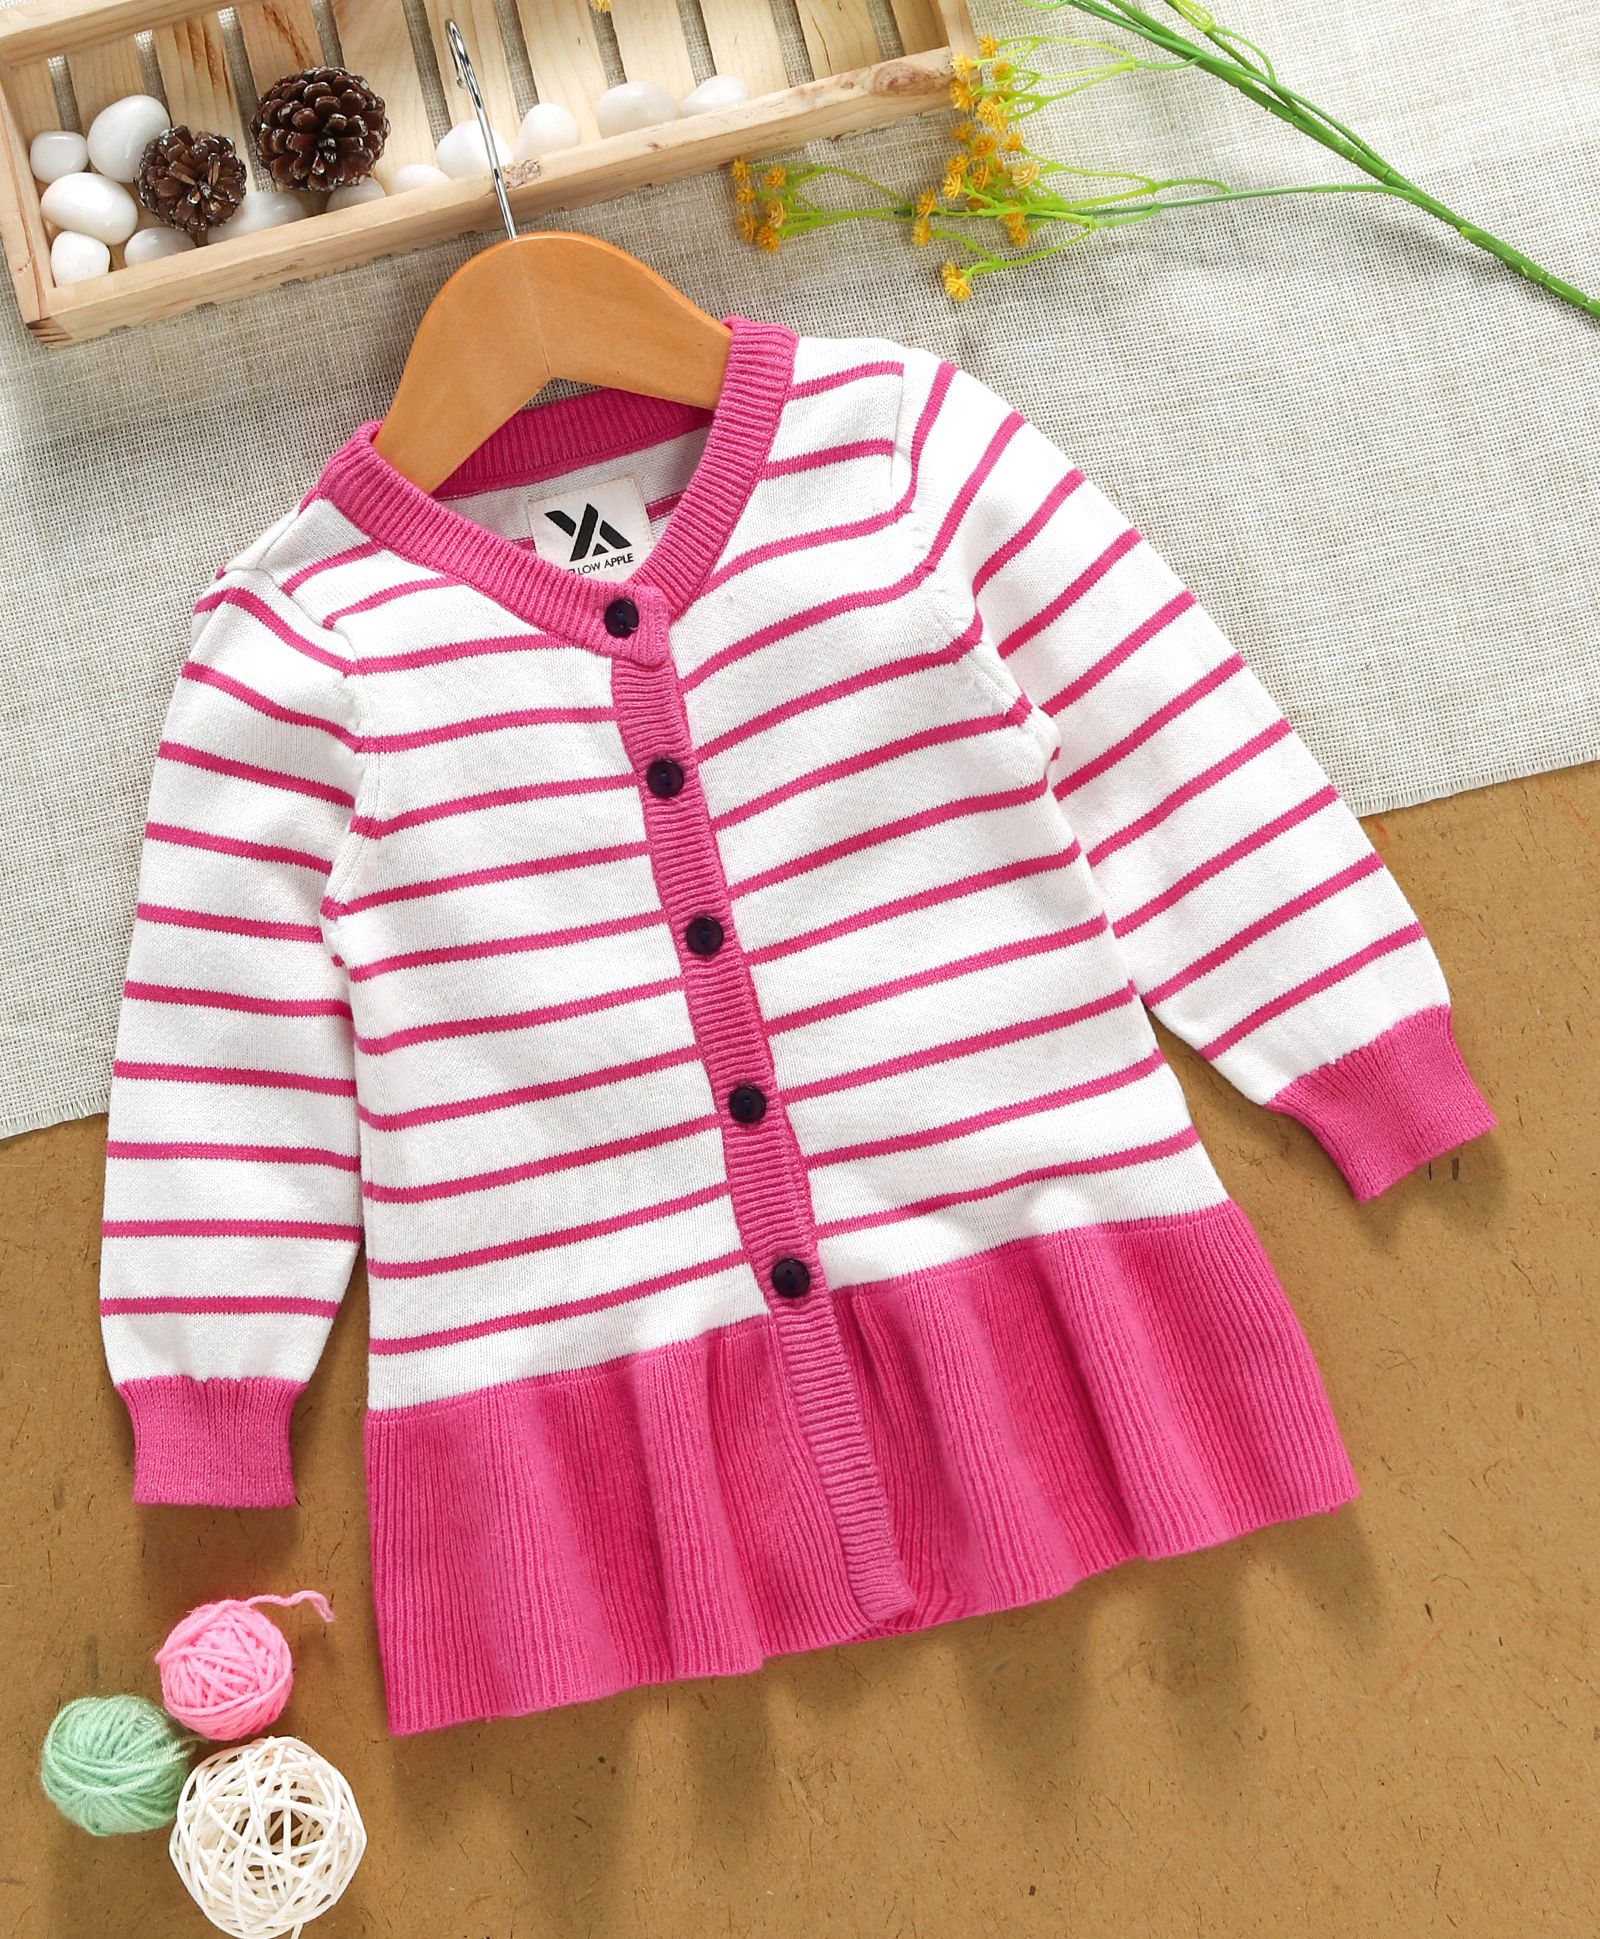 b356b2513 Buy Yellow Apple Full Sleeves Winter Wear Frock Pink for Girls (2-3 ...